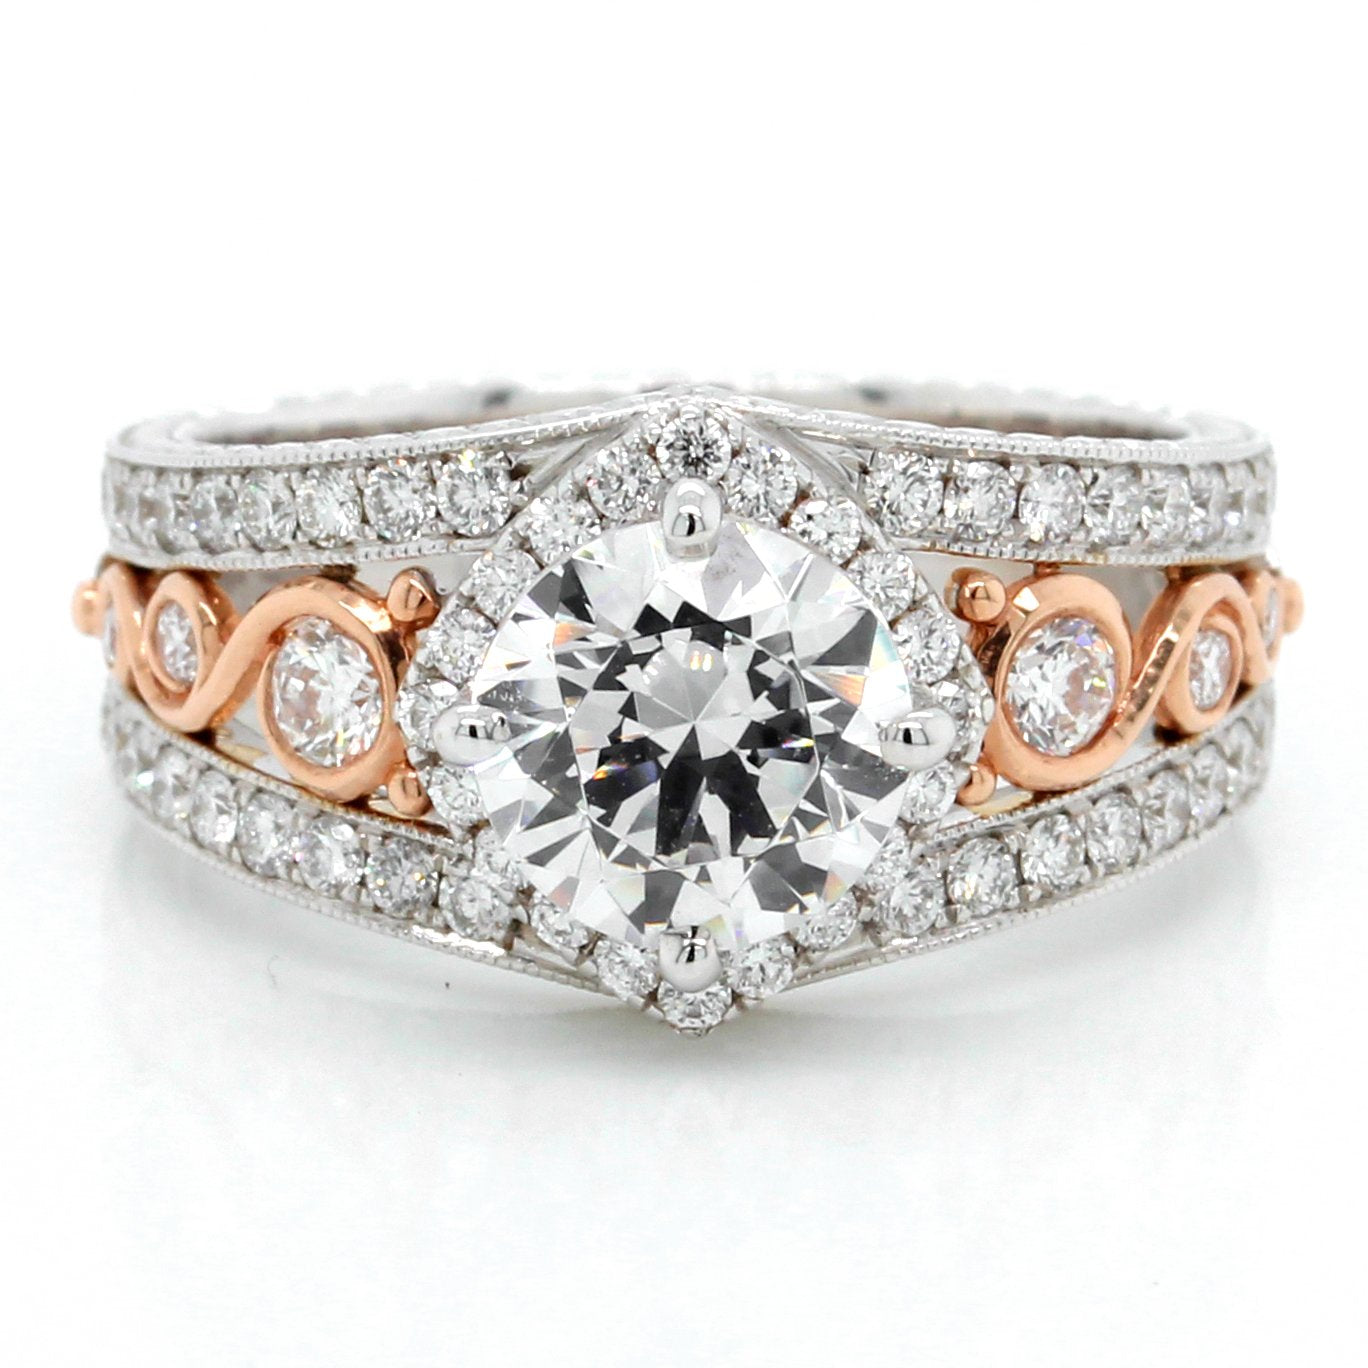 18K White Gold and 14K Rose Gold Three Row Milgrain Halo Engagement Ring